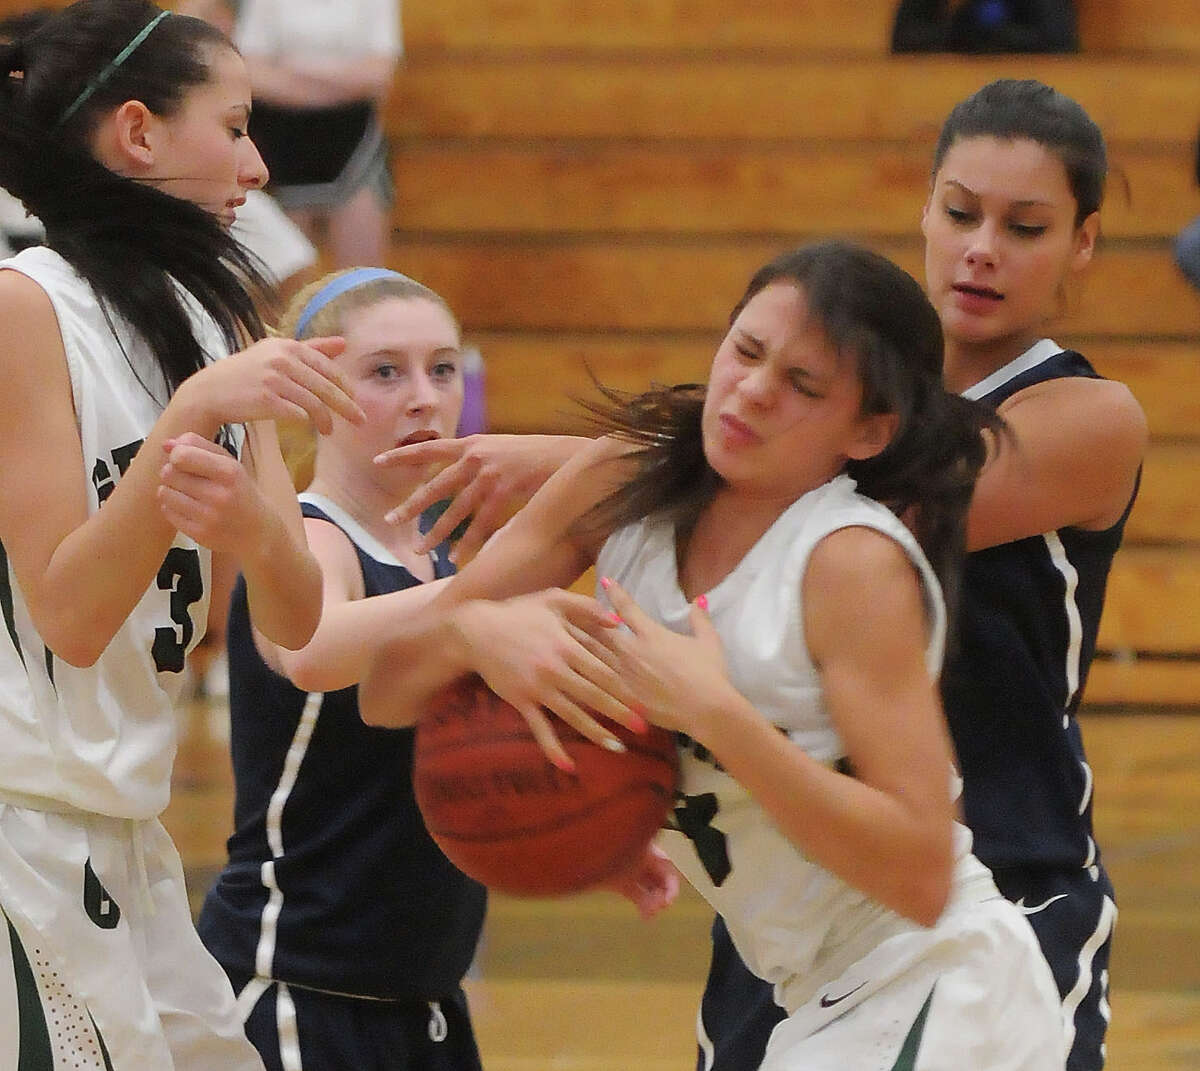 (Mara Lavitt ?' New Haven Register) December 20, 2013 Guilford East Haven at Guilford girls basketball: from left: Guilford's Meredith Shank, East Haven's Tori Carlson, Guilford's Amy Puchini and East Haven's Jillian Korwek.